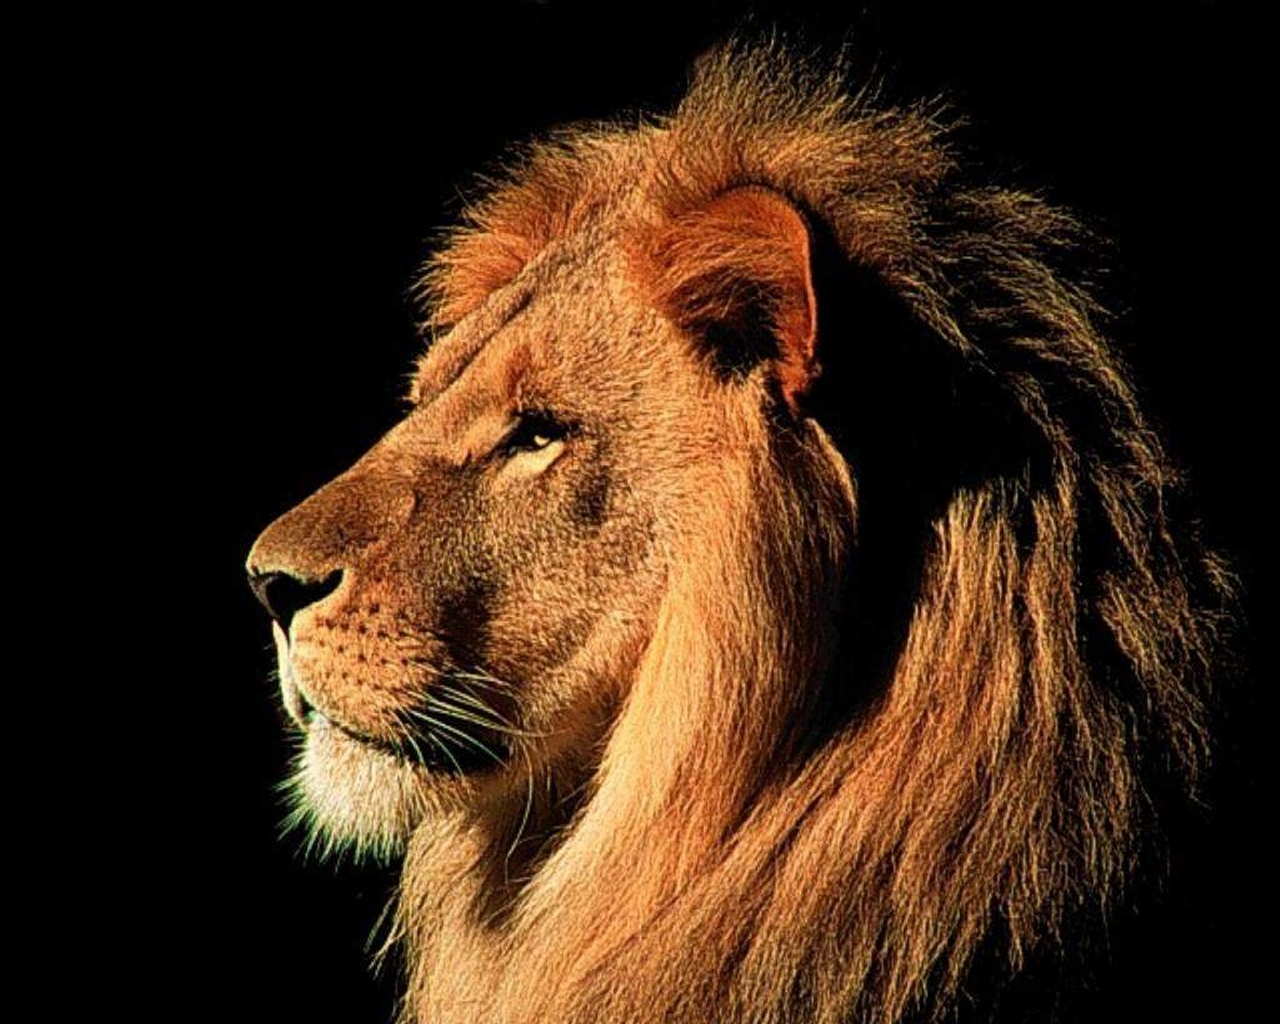 http://3.bp.blogspot.com/-Hu4hOkaJ2LA/TWP4B0o1ELI/AAAAAAAAAR8/Lddjrrj2Iq4/s1600/wallpapers-animals-lion-1280.jpg